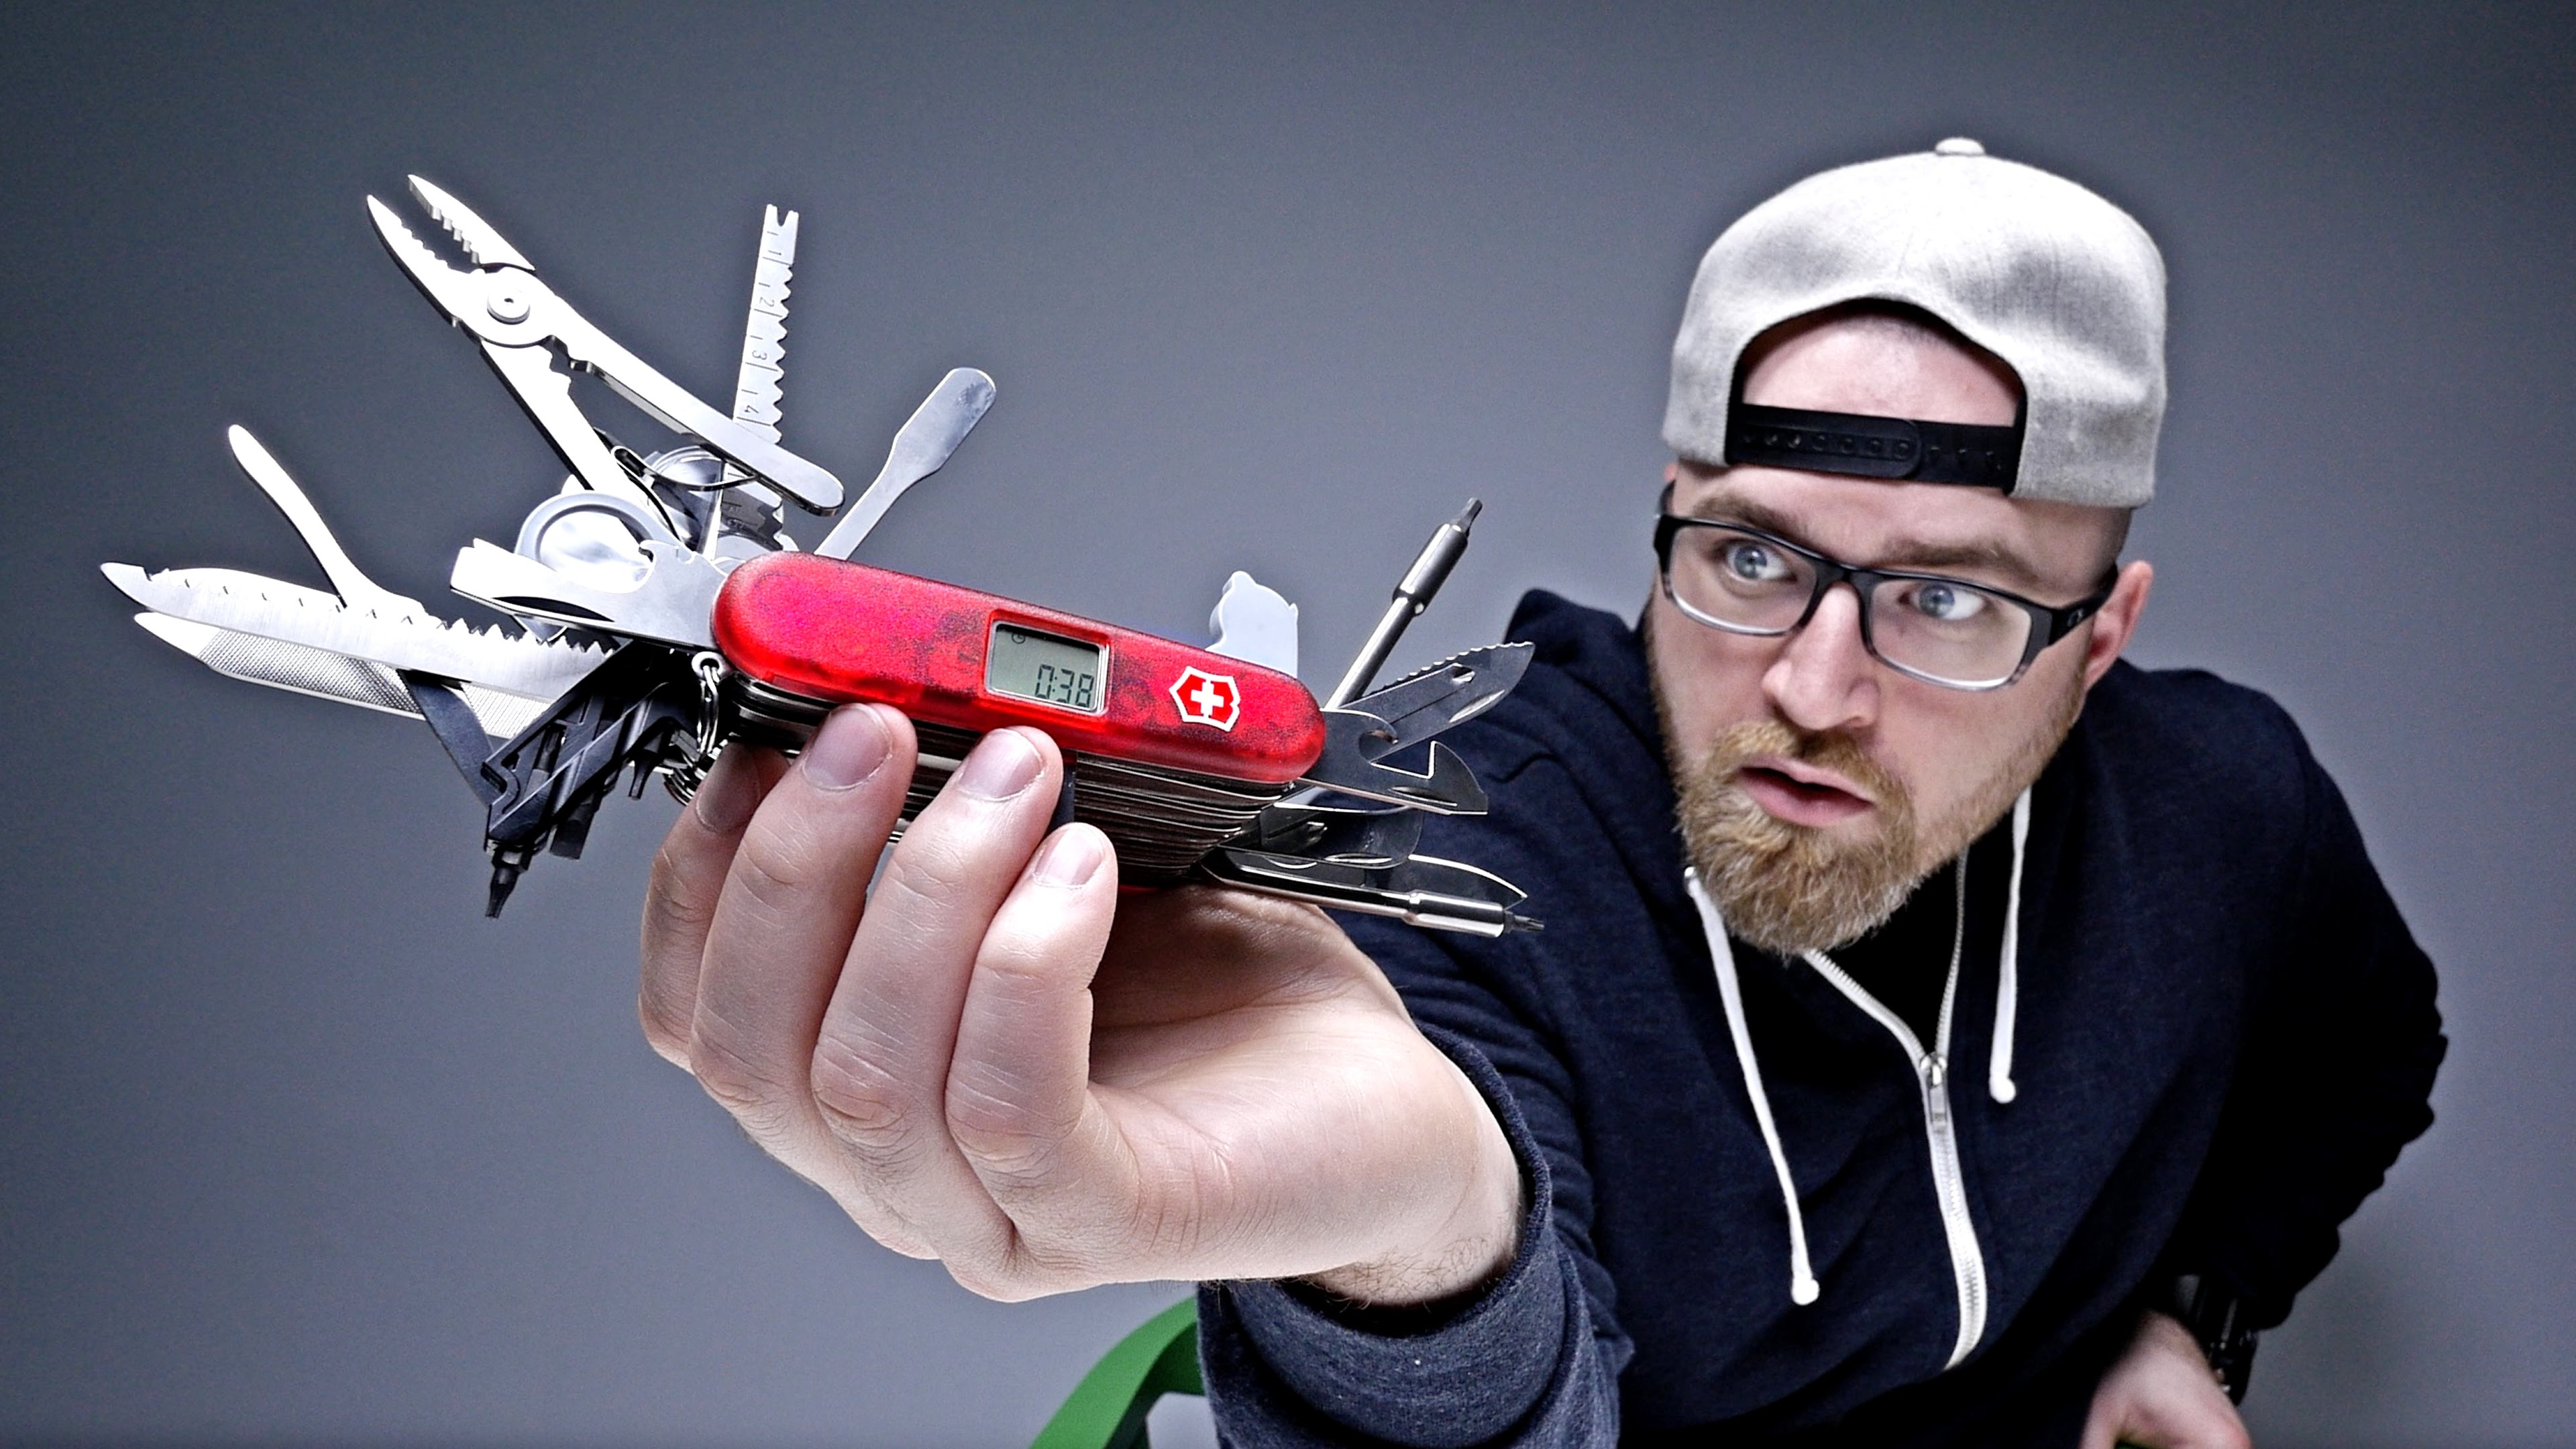 Swiss Army Knife As A Survival Kit Survivalkit Com